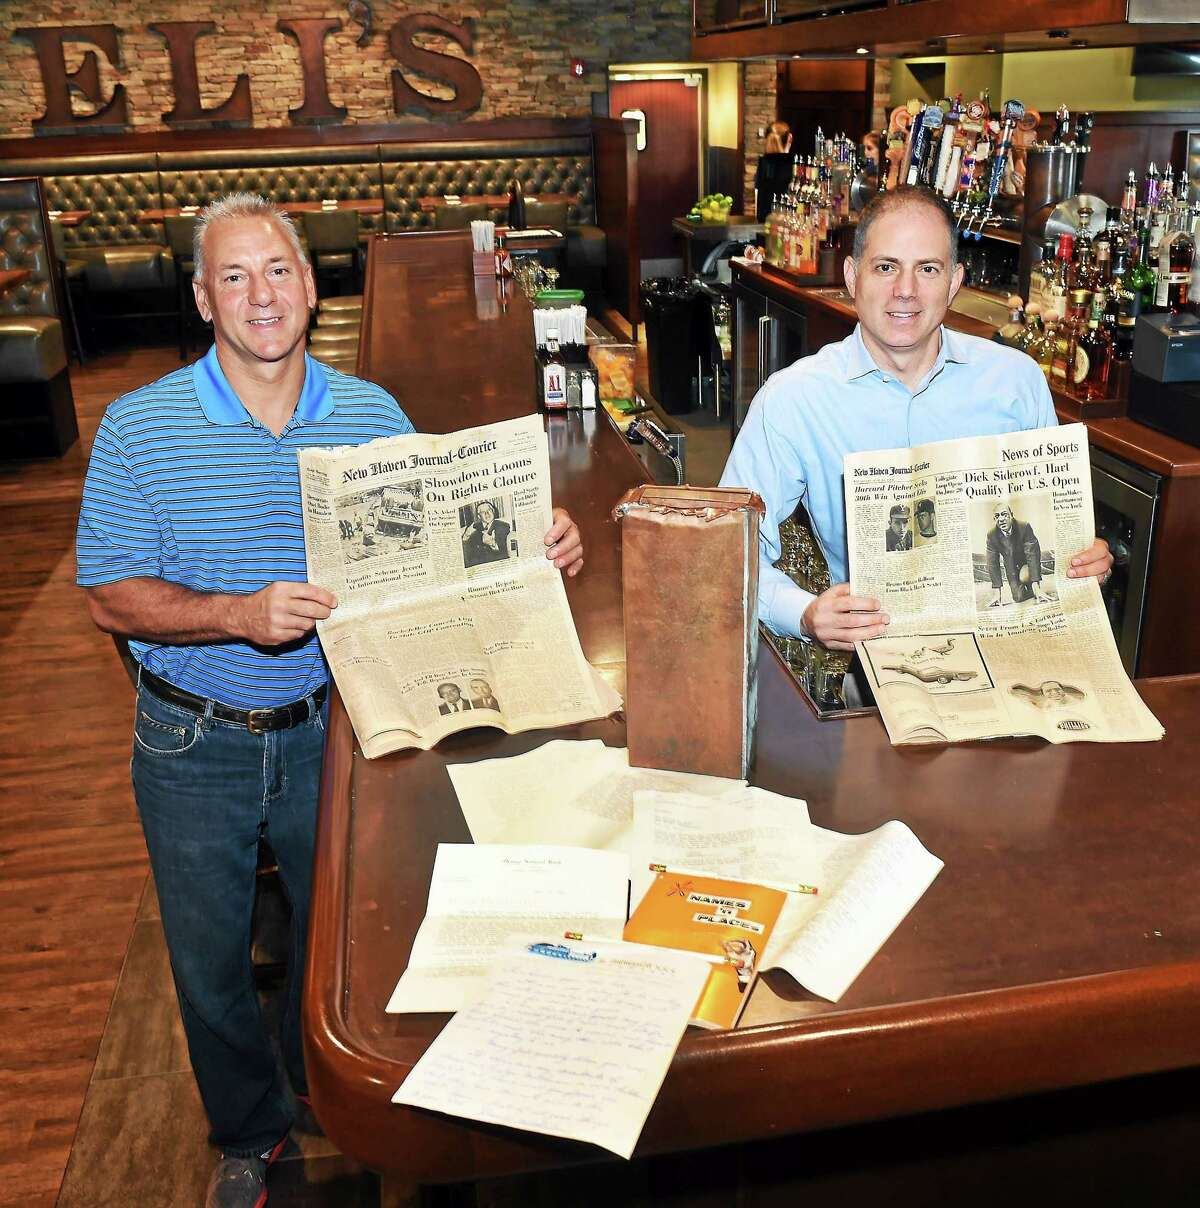 (Peter Hvizdak - New Haven Register) Richard Ciardiello, owner of the Eli's restaurant chain in the New Haven area, left, and Shawn Reilly, Eli's Director of Operations, at the Eli's restaurant in Orange with 1964 artifacts found in a time capsule found on the construction site of the Orange restaurant when it was being built recently.